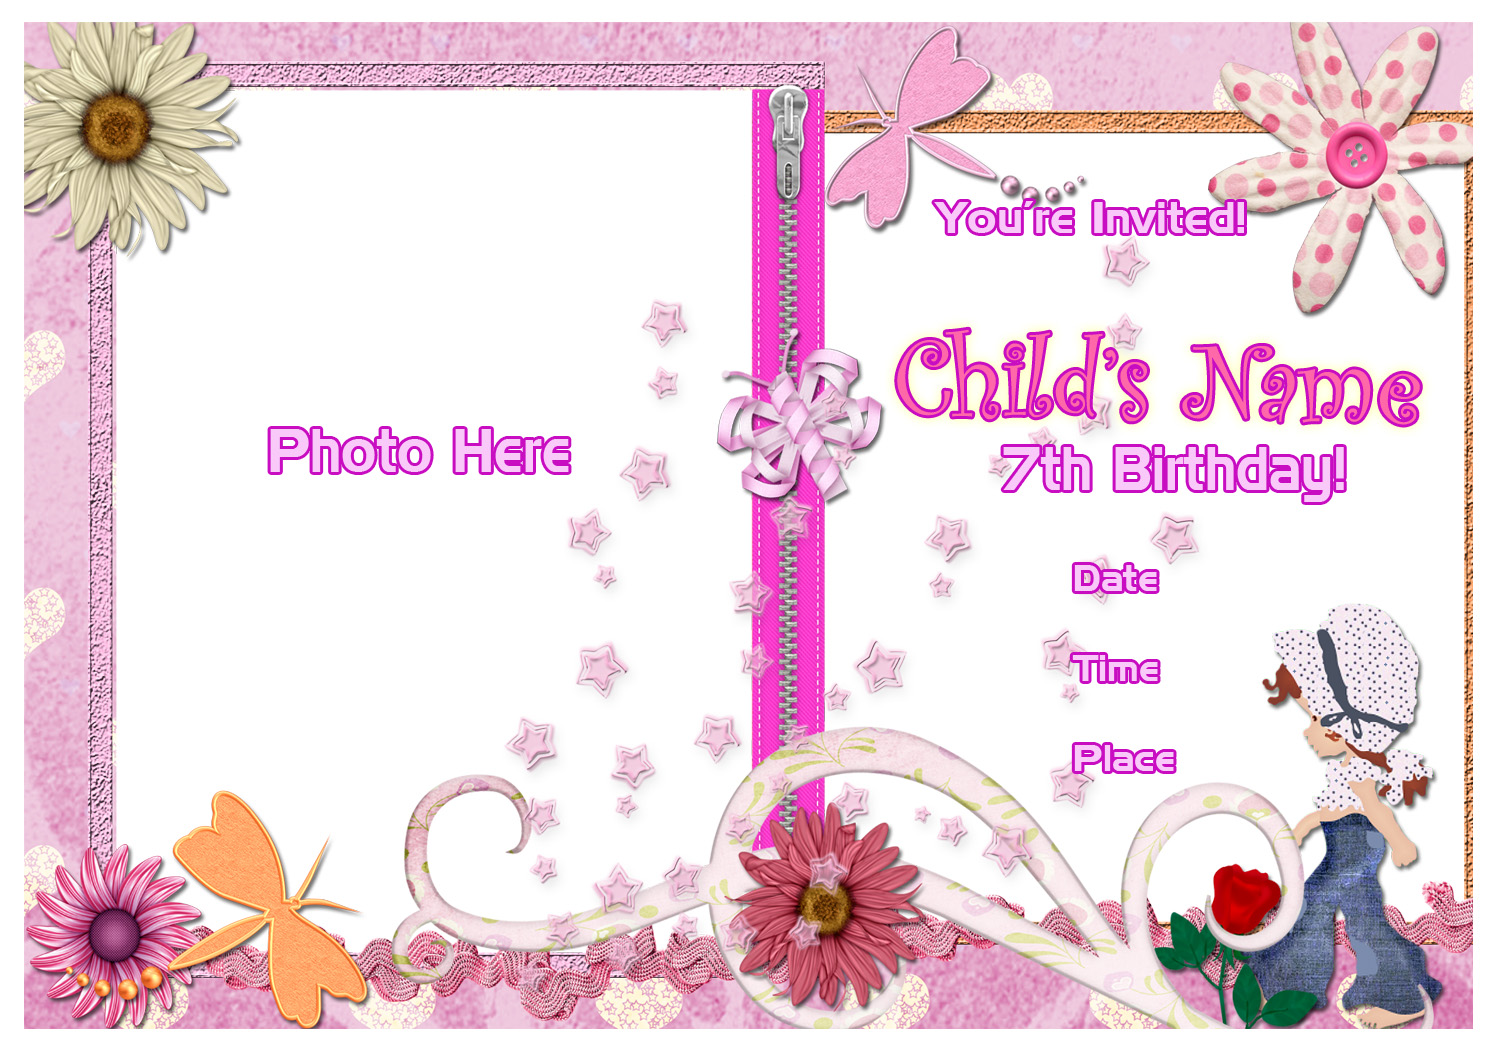 Pinktinyshop Photo Invites For 7th Birthday Girl